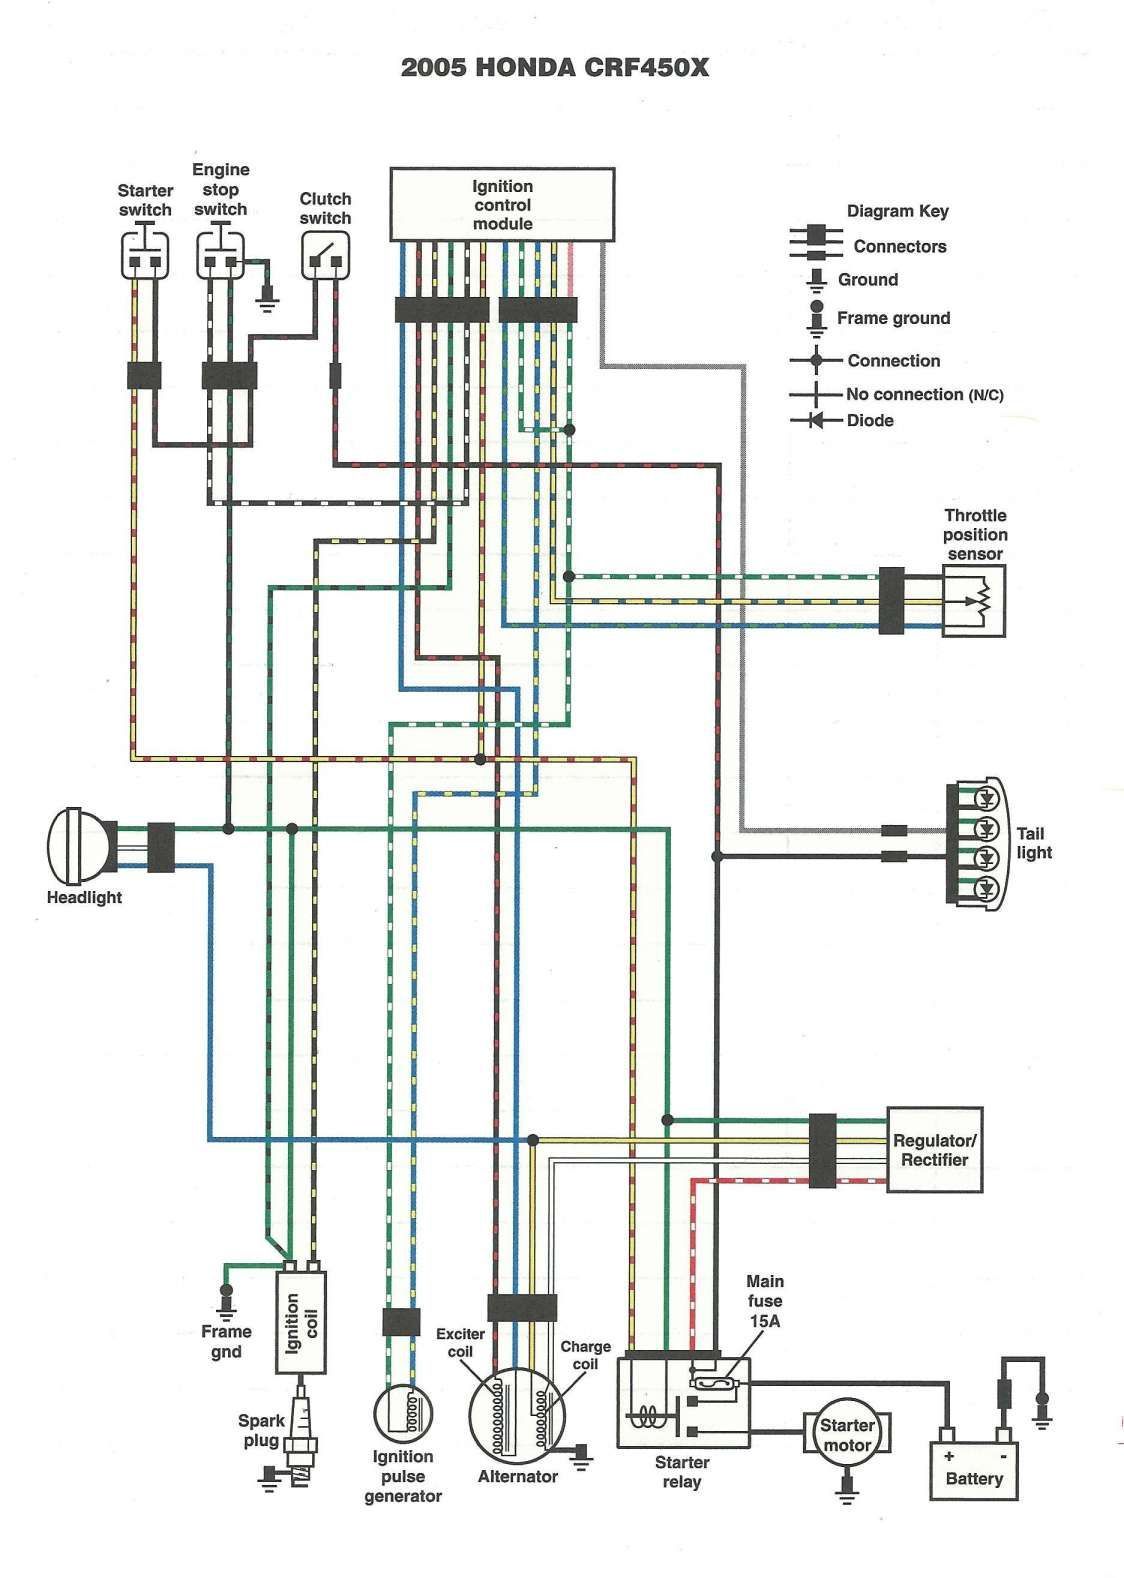 Engine Diagram - Page 15 of 76 - Wiringg.net | Motorcycle wiring, Electrical  diagram, Electrical wiring diagram | 110 Schematic Wiring Diagram Ground |  | Pinterest